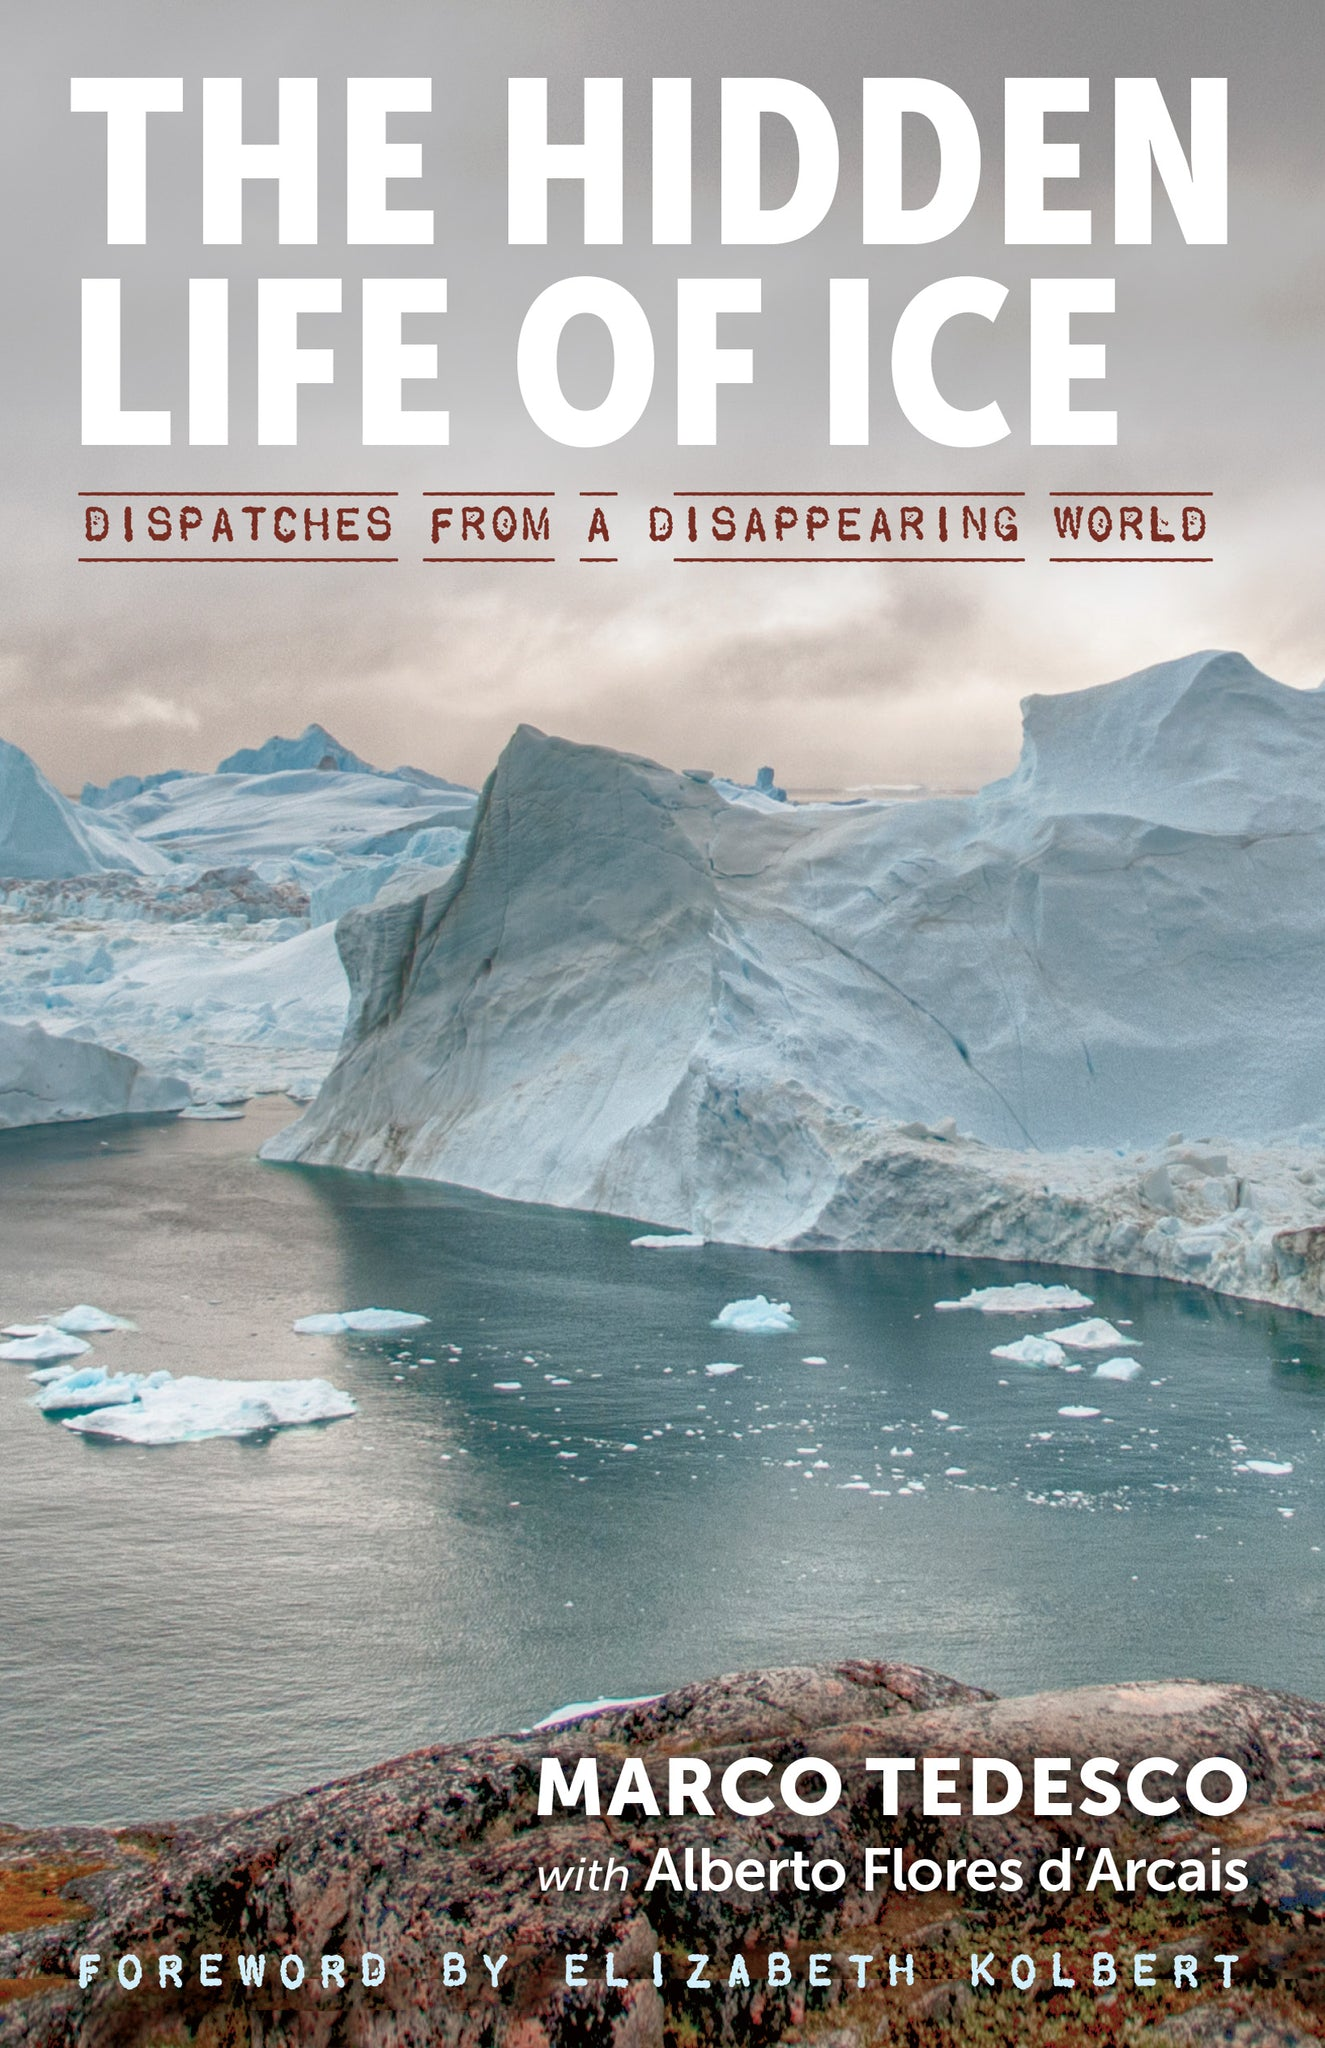 The Hidden Life of Ice: Dispatches from a Disappearing World (Signed)